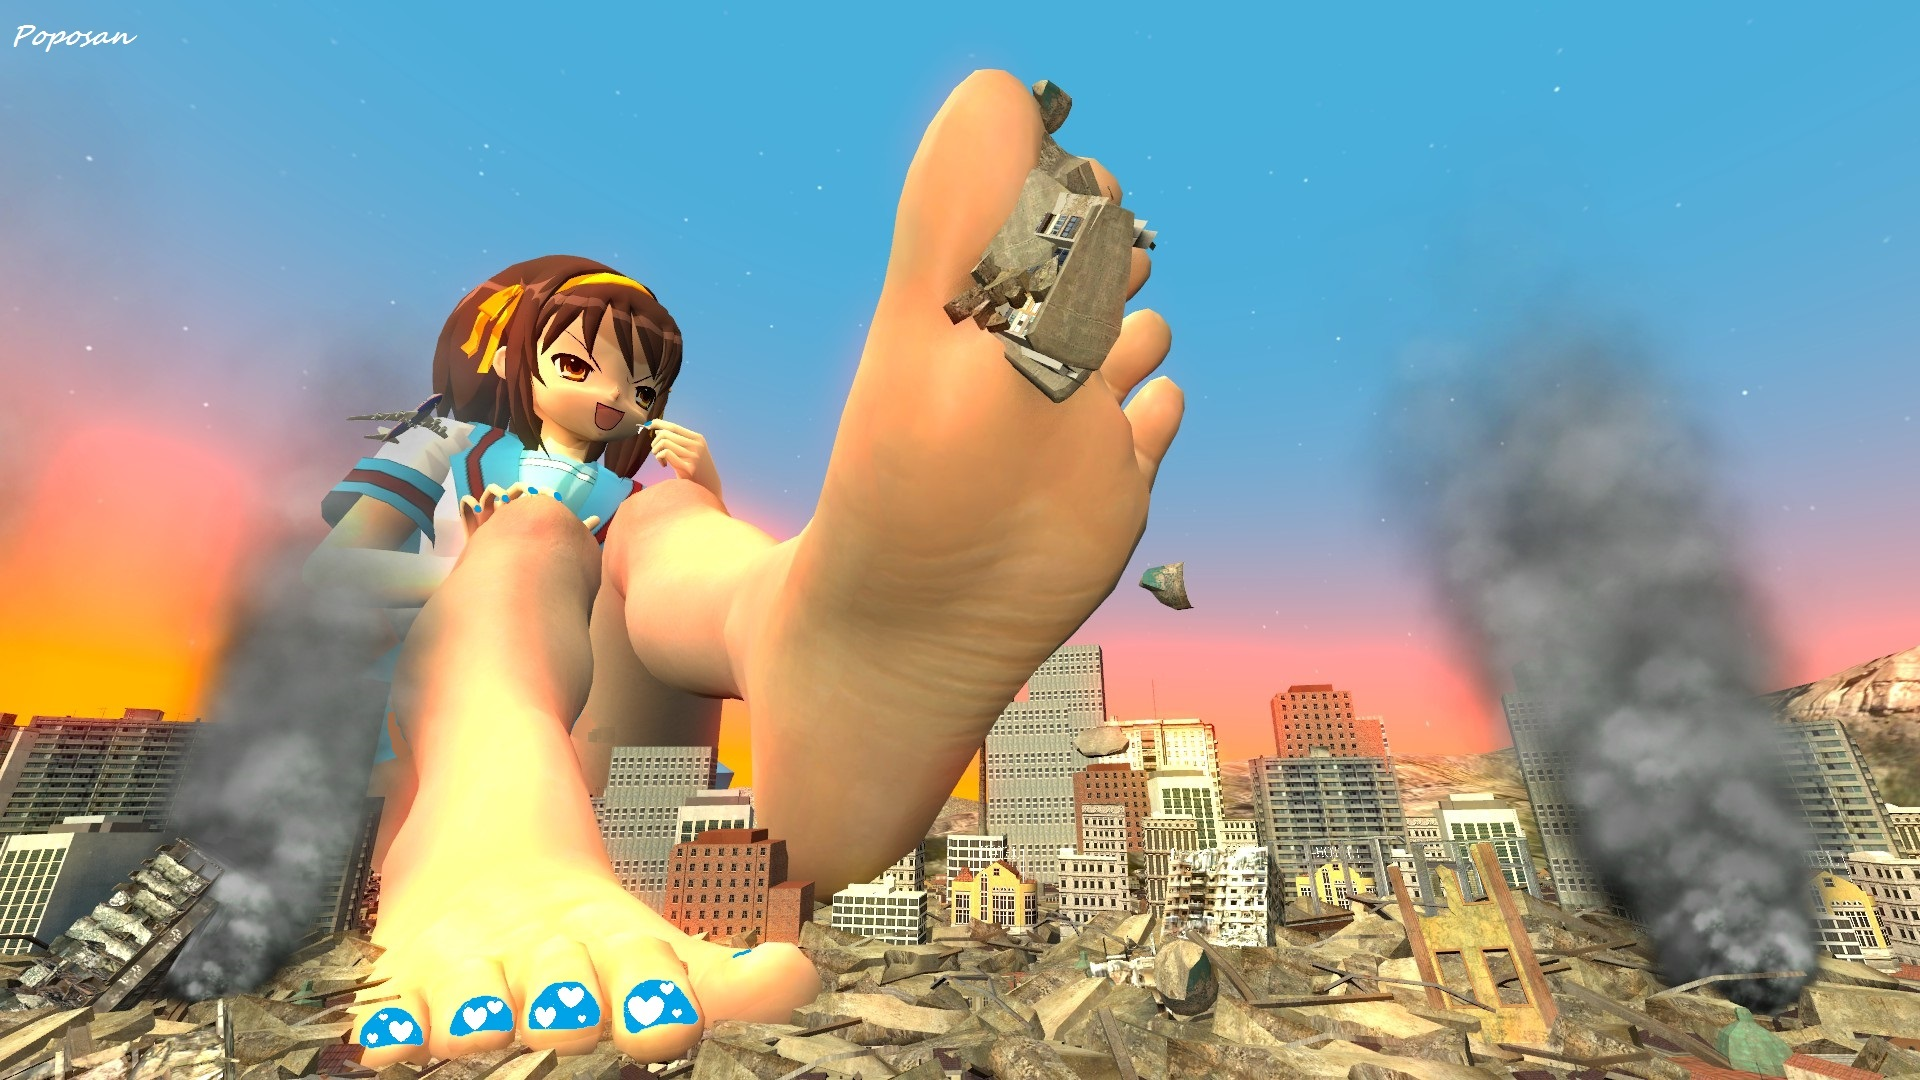 Giantess naked sexual image